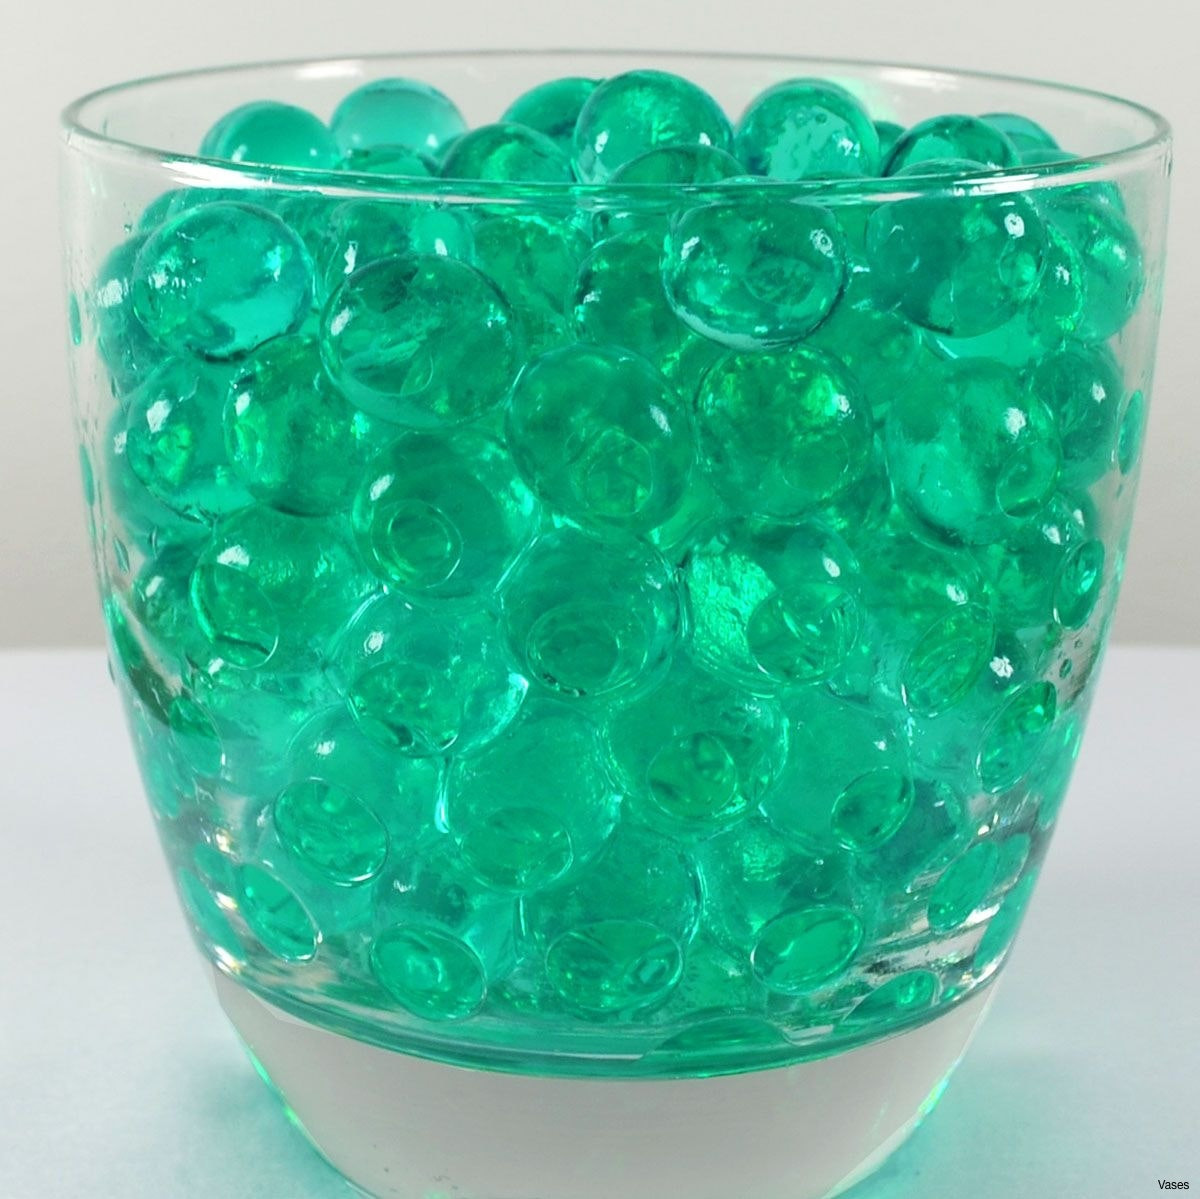 Glass Balls for Vases Of Decoration Balls for Vases Glass Bead Vase Filler 1 2h Vases Gems In Decoration Balls for Vases 81gmck0kcel Sl1500 H Vases Jelly Balls for 2 Packs Glam Decor Water